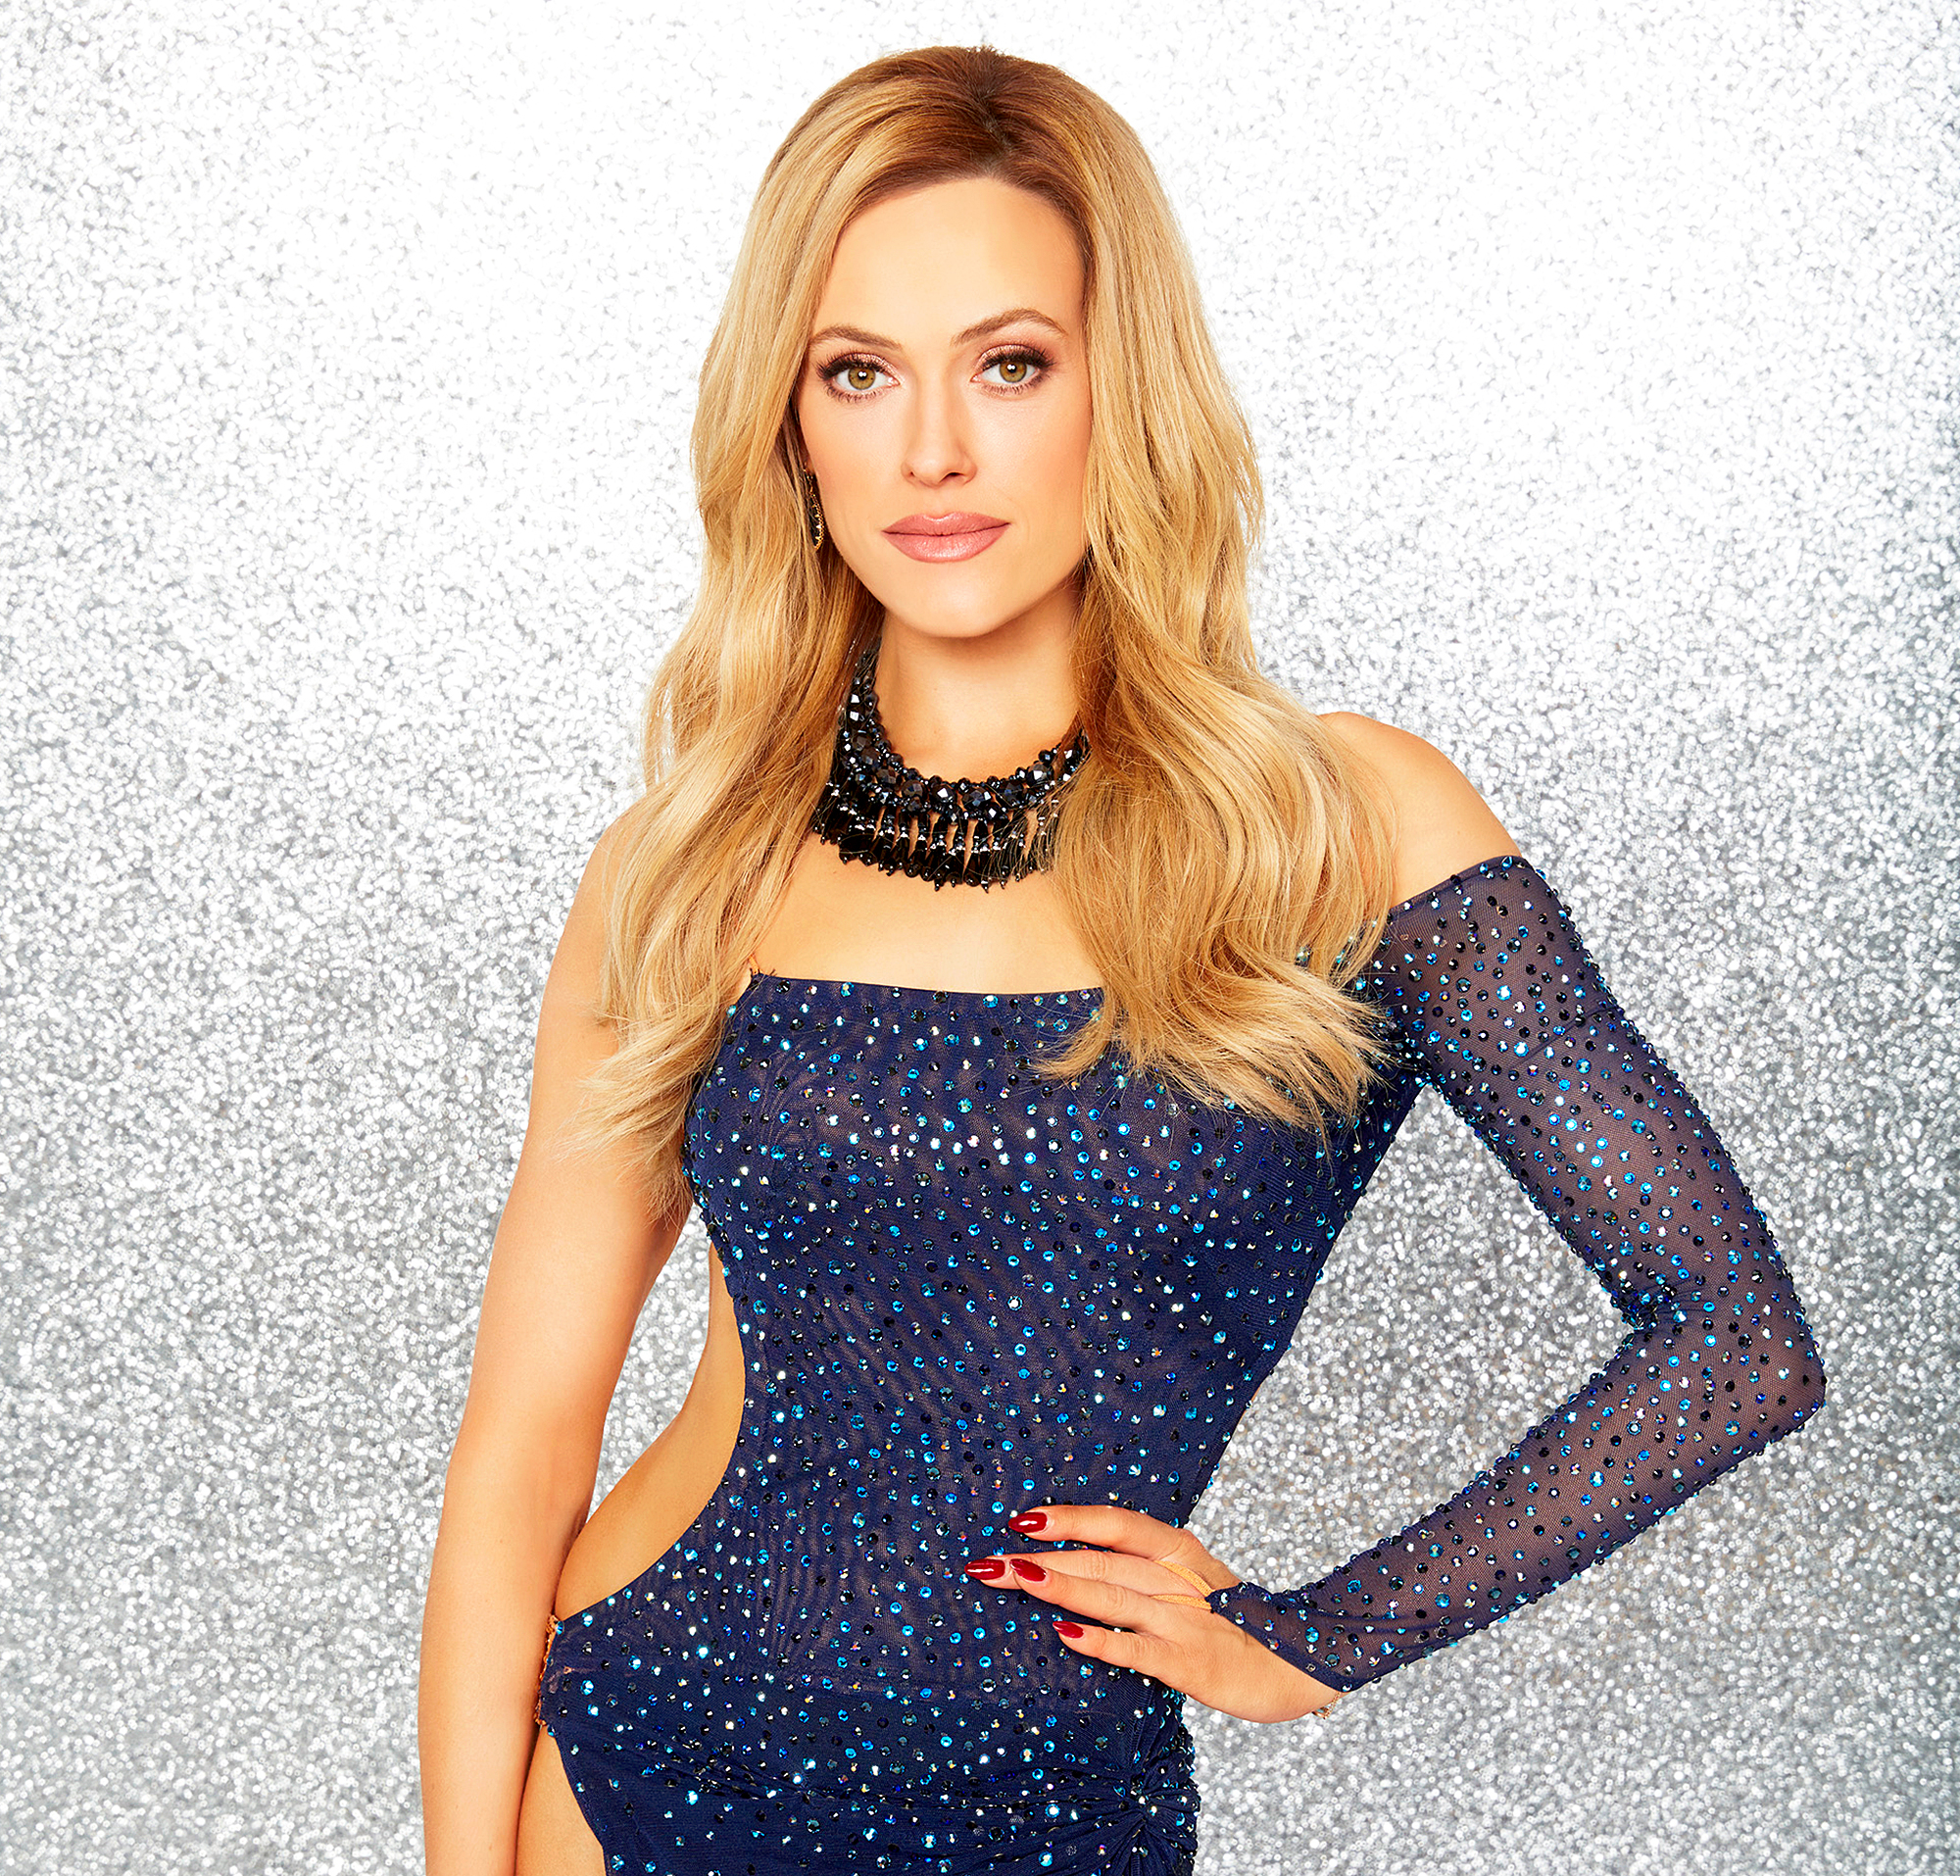 Peta on dancing with the stars sexy looks